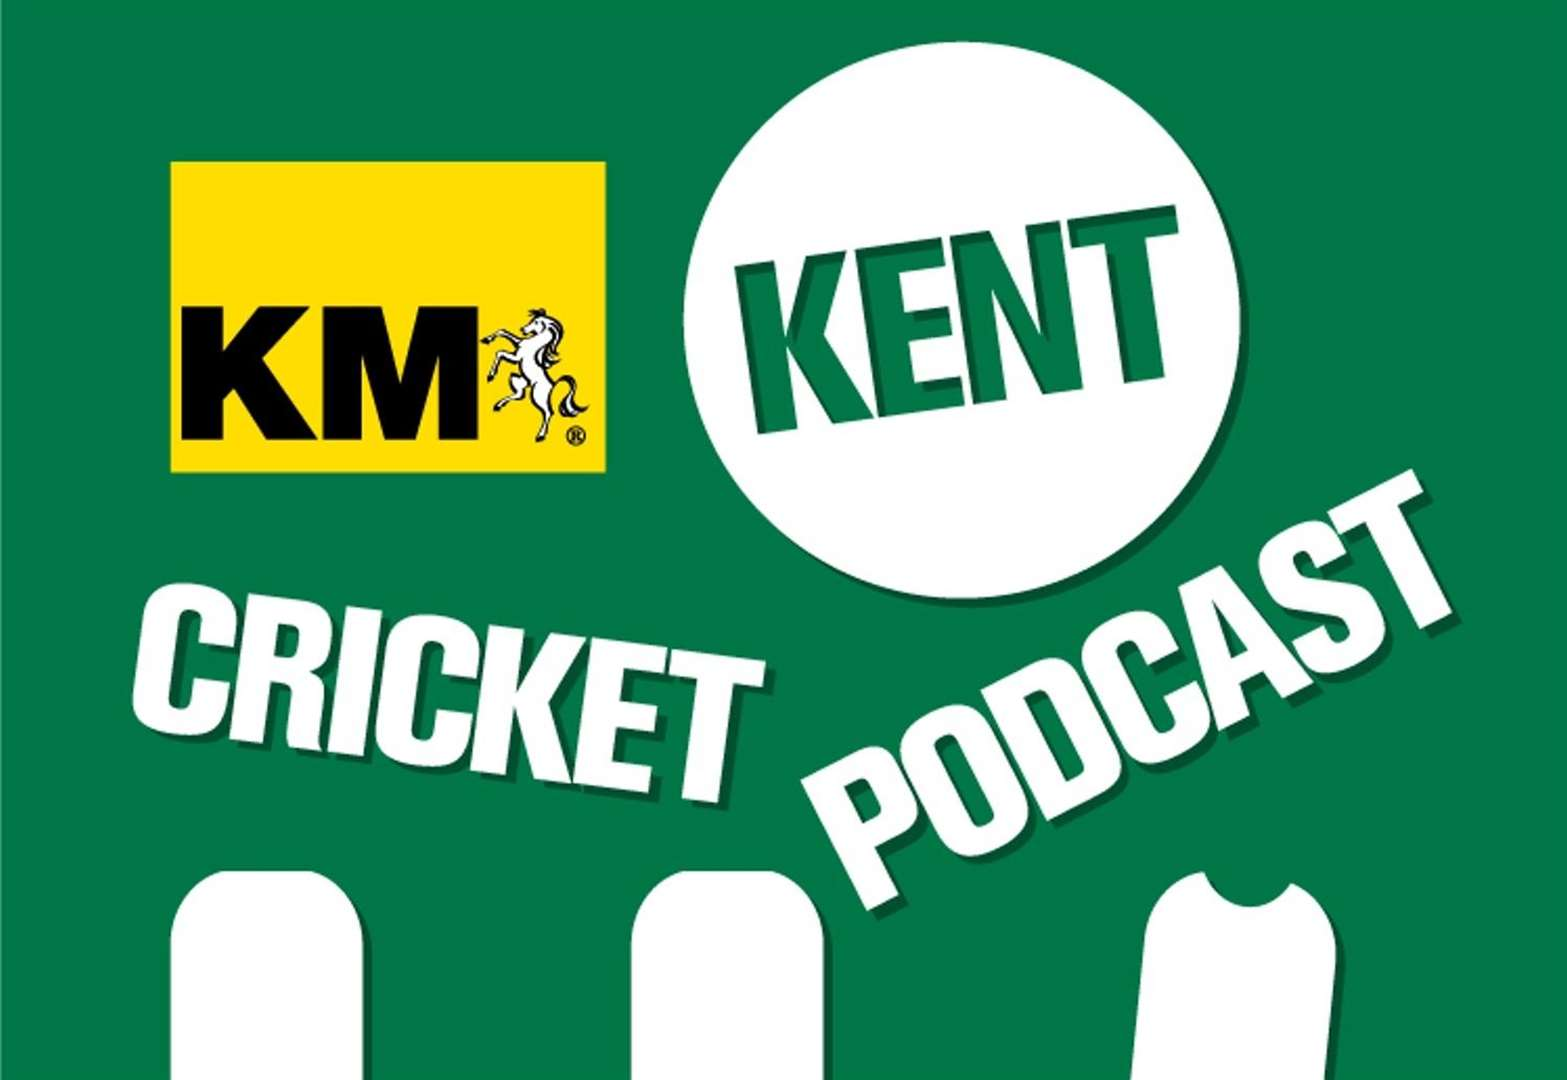 Kent Cricket Podcast: Stoinis hits ground running